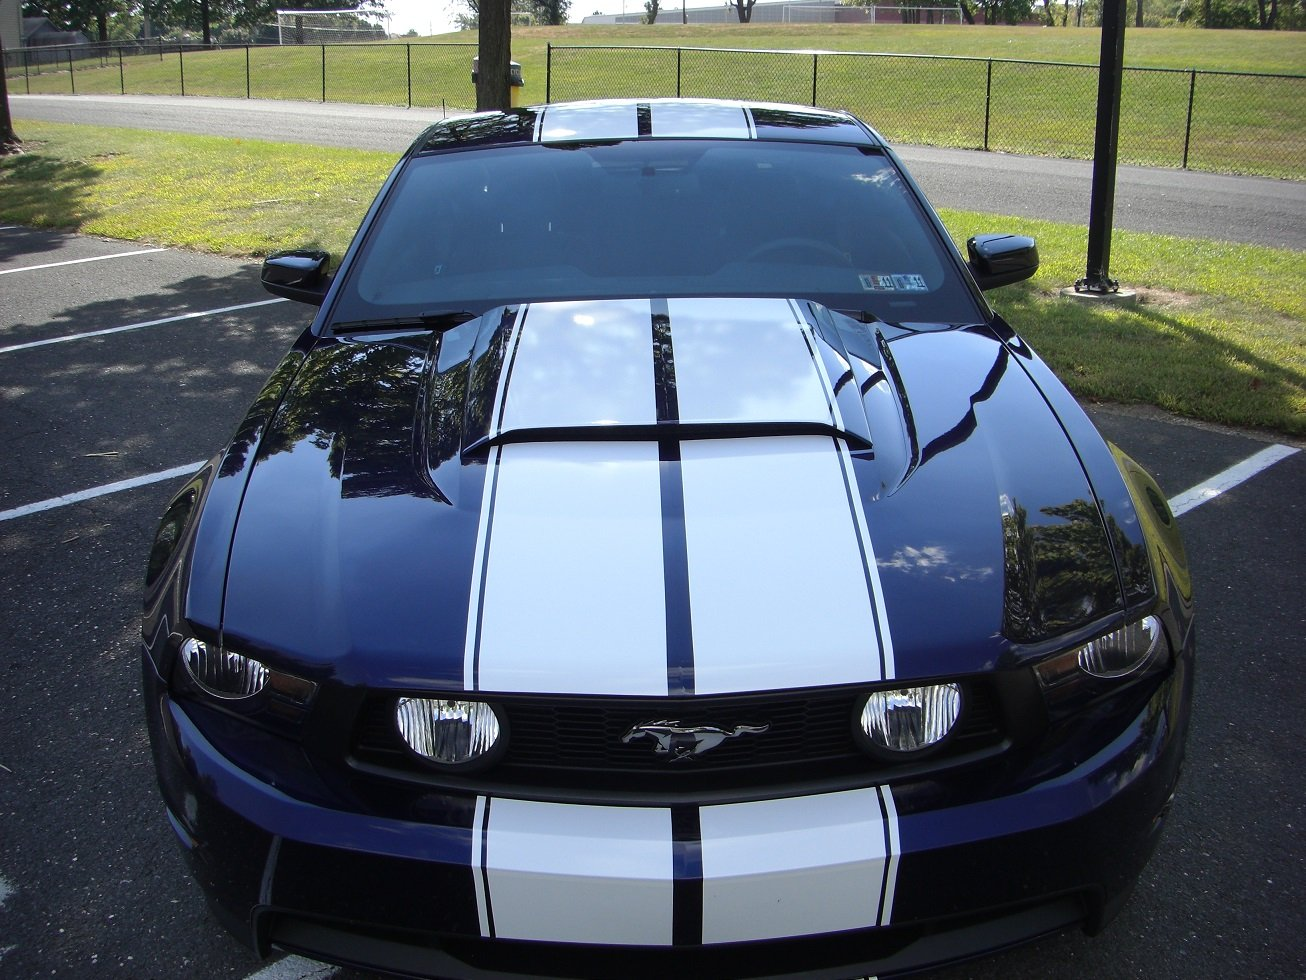 Ford San Antonio >> Racing stripes: tapered vs. straight, and measurements? - Ford Mustang Forum